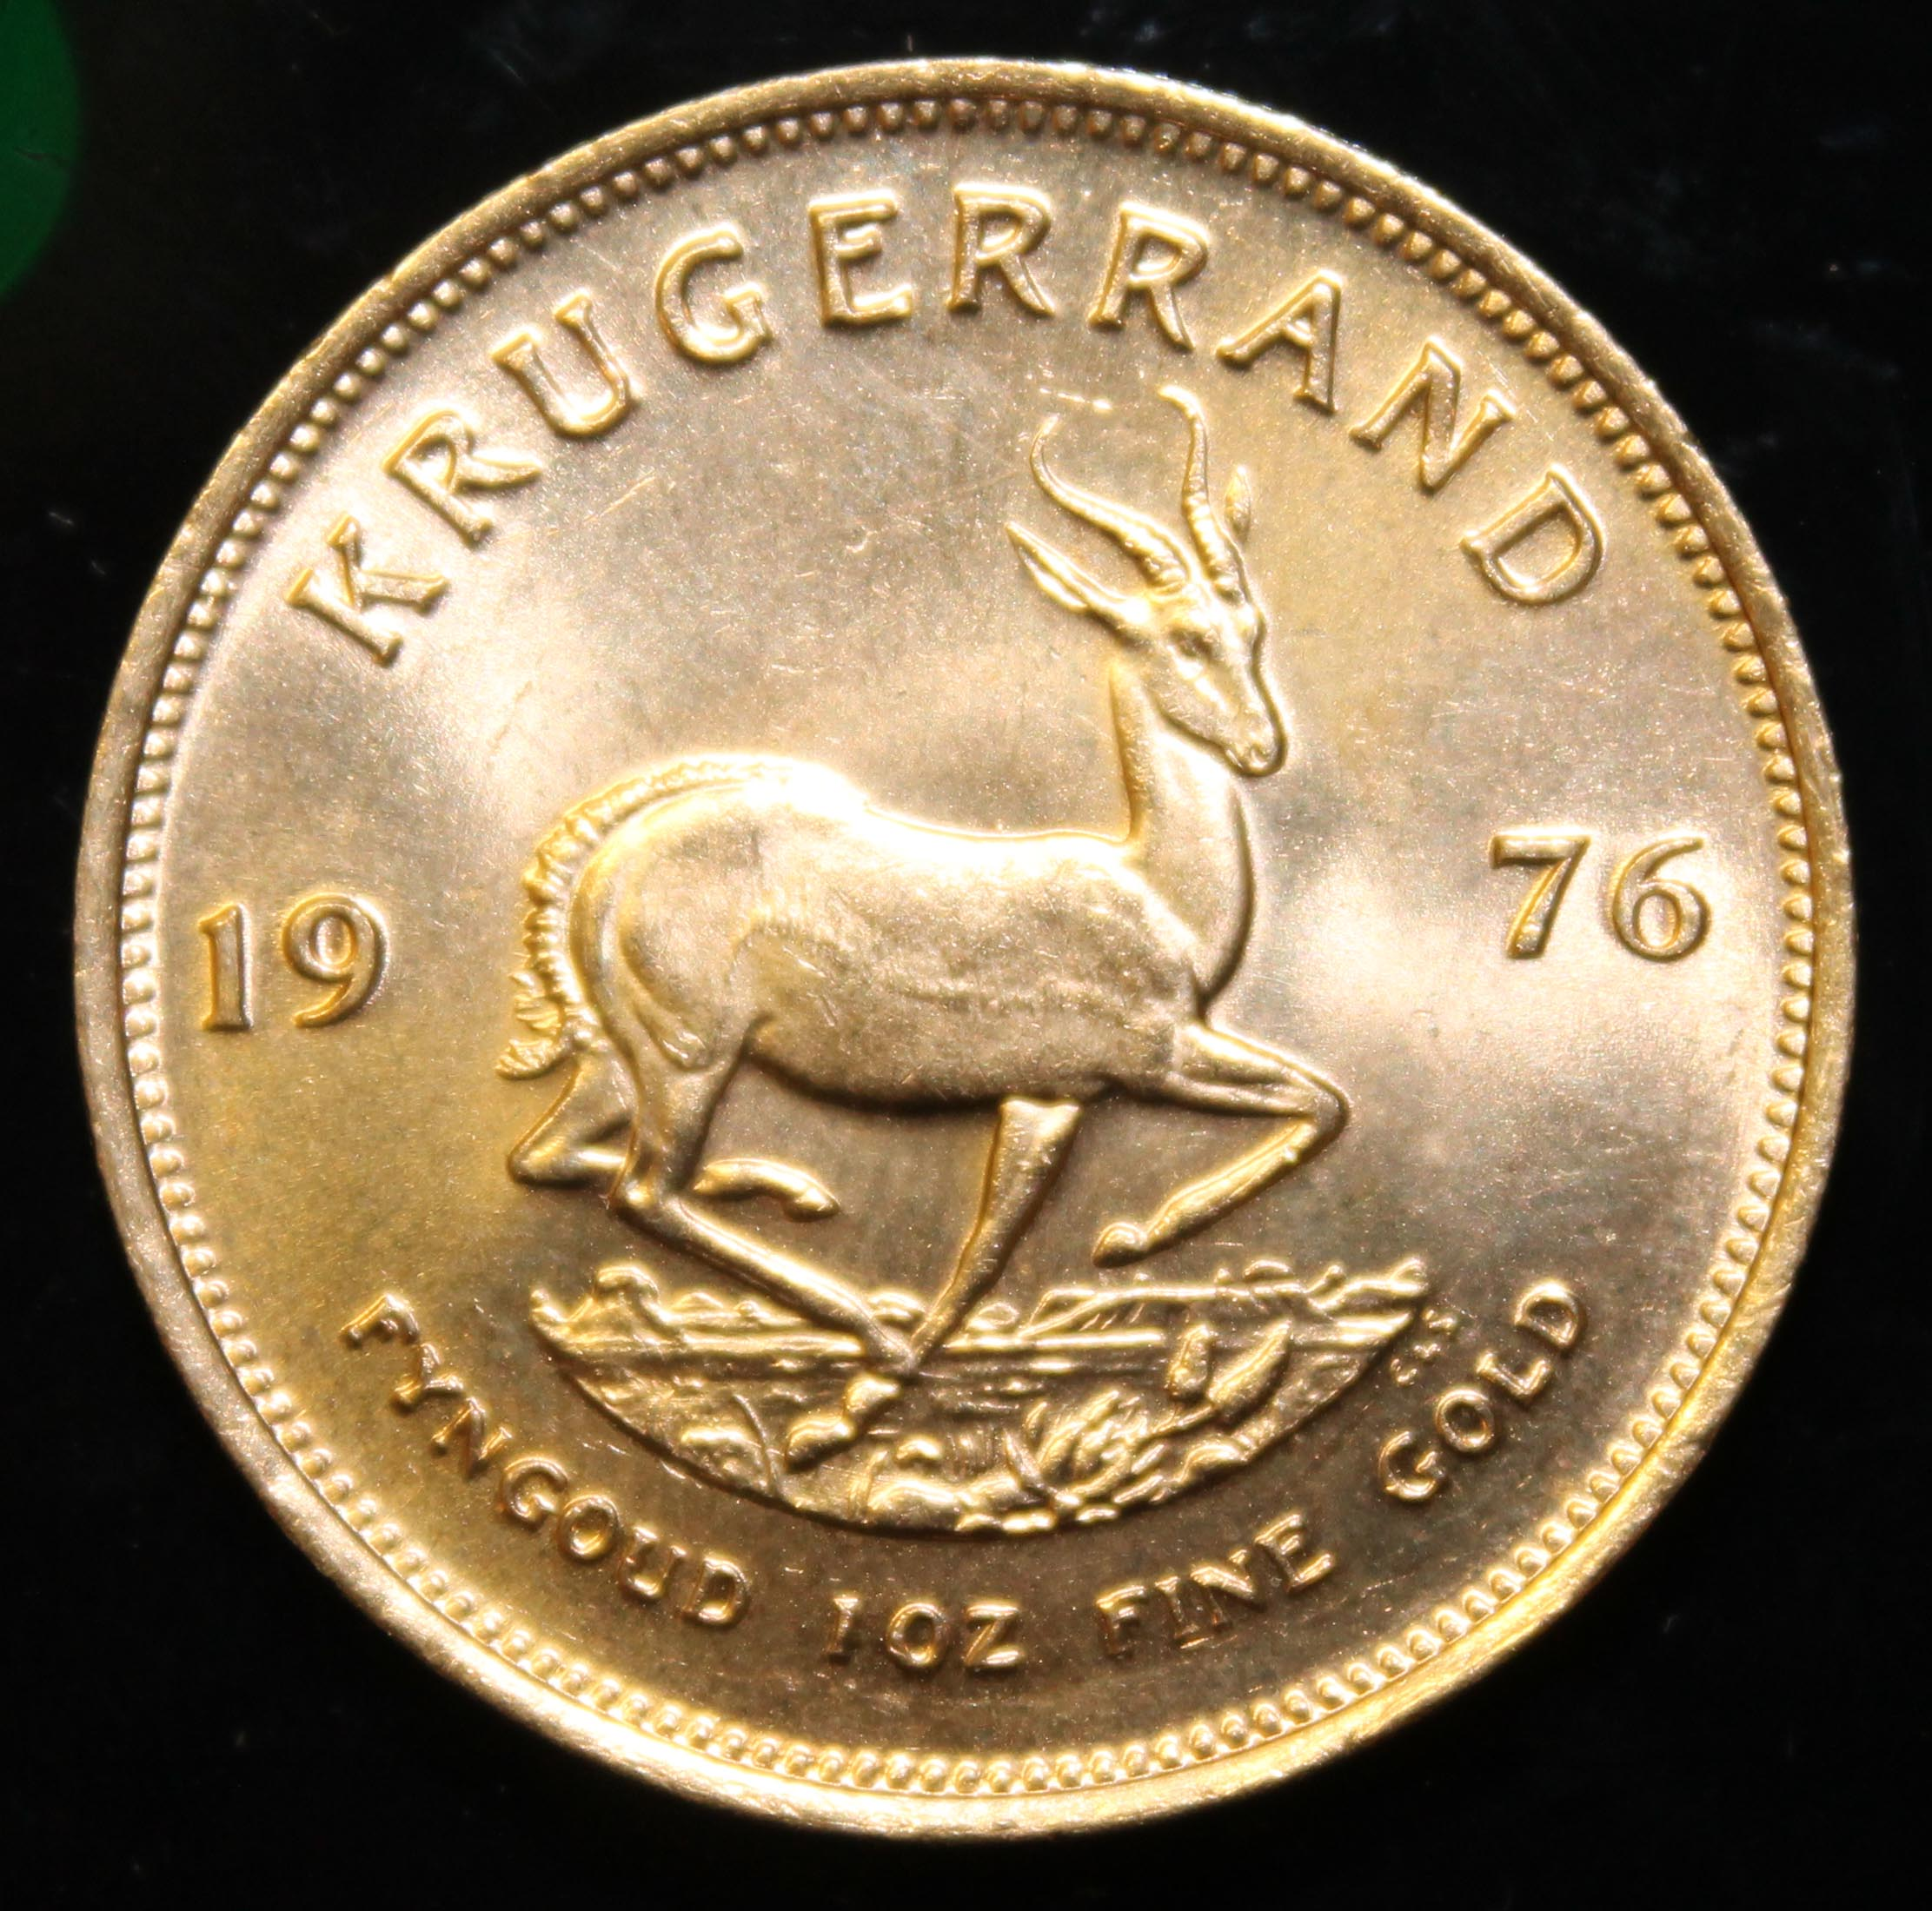 South Africa, 1976 Krugerrand, 1 oz. fine gold (91.67%) ONLY 10% BUYER'S PREMIUM (INCLUSIVE OF - Image 2 of 2